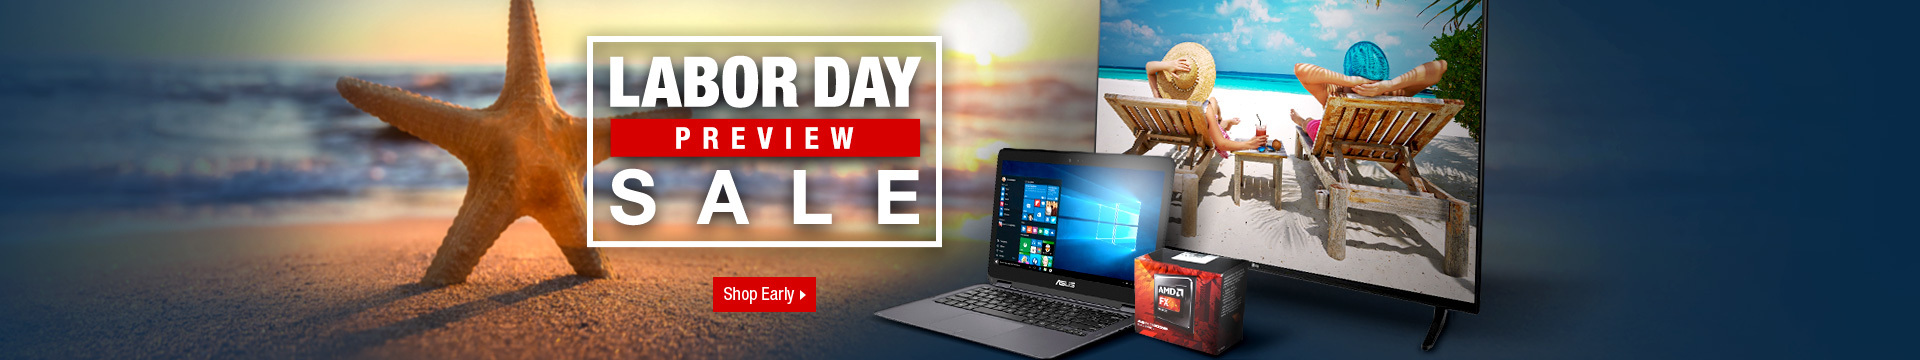 Labor Day Preview Sale